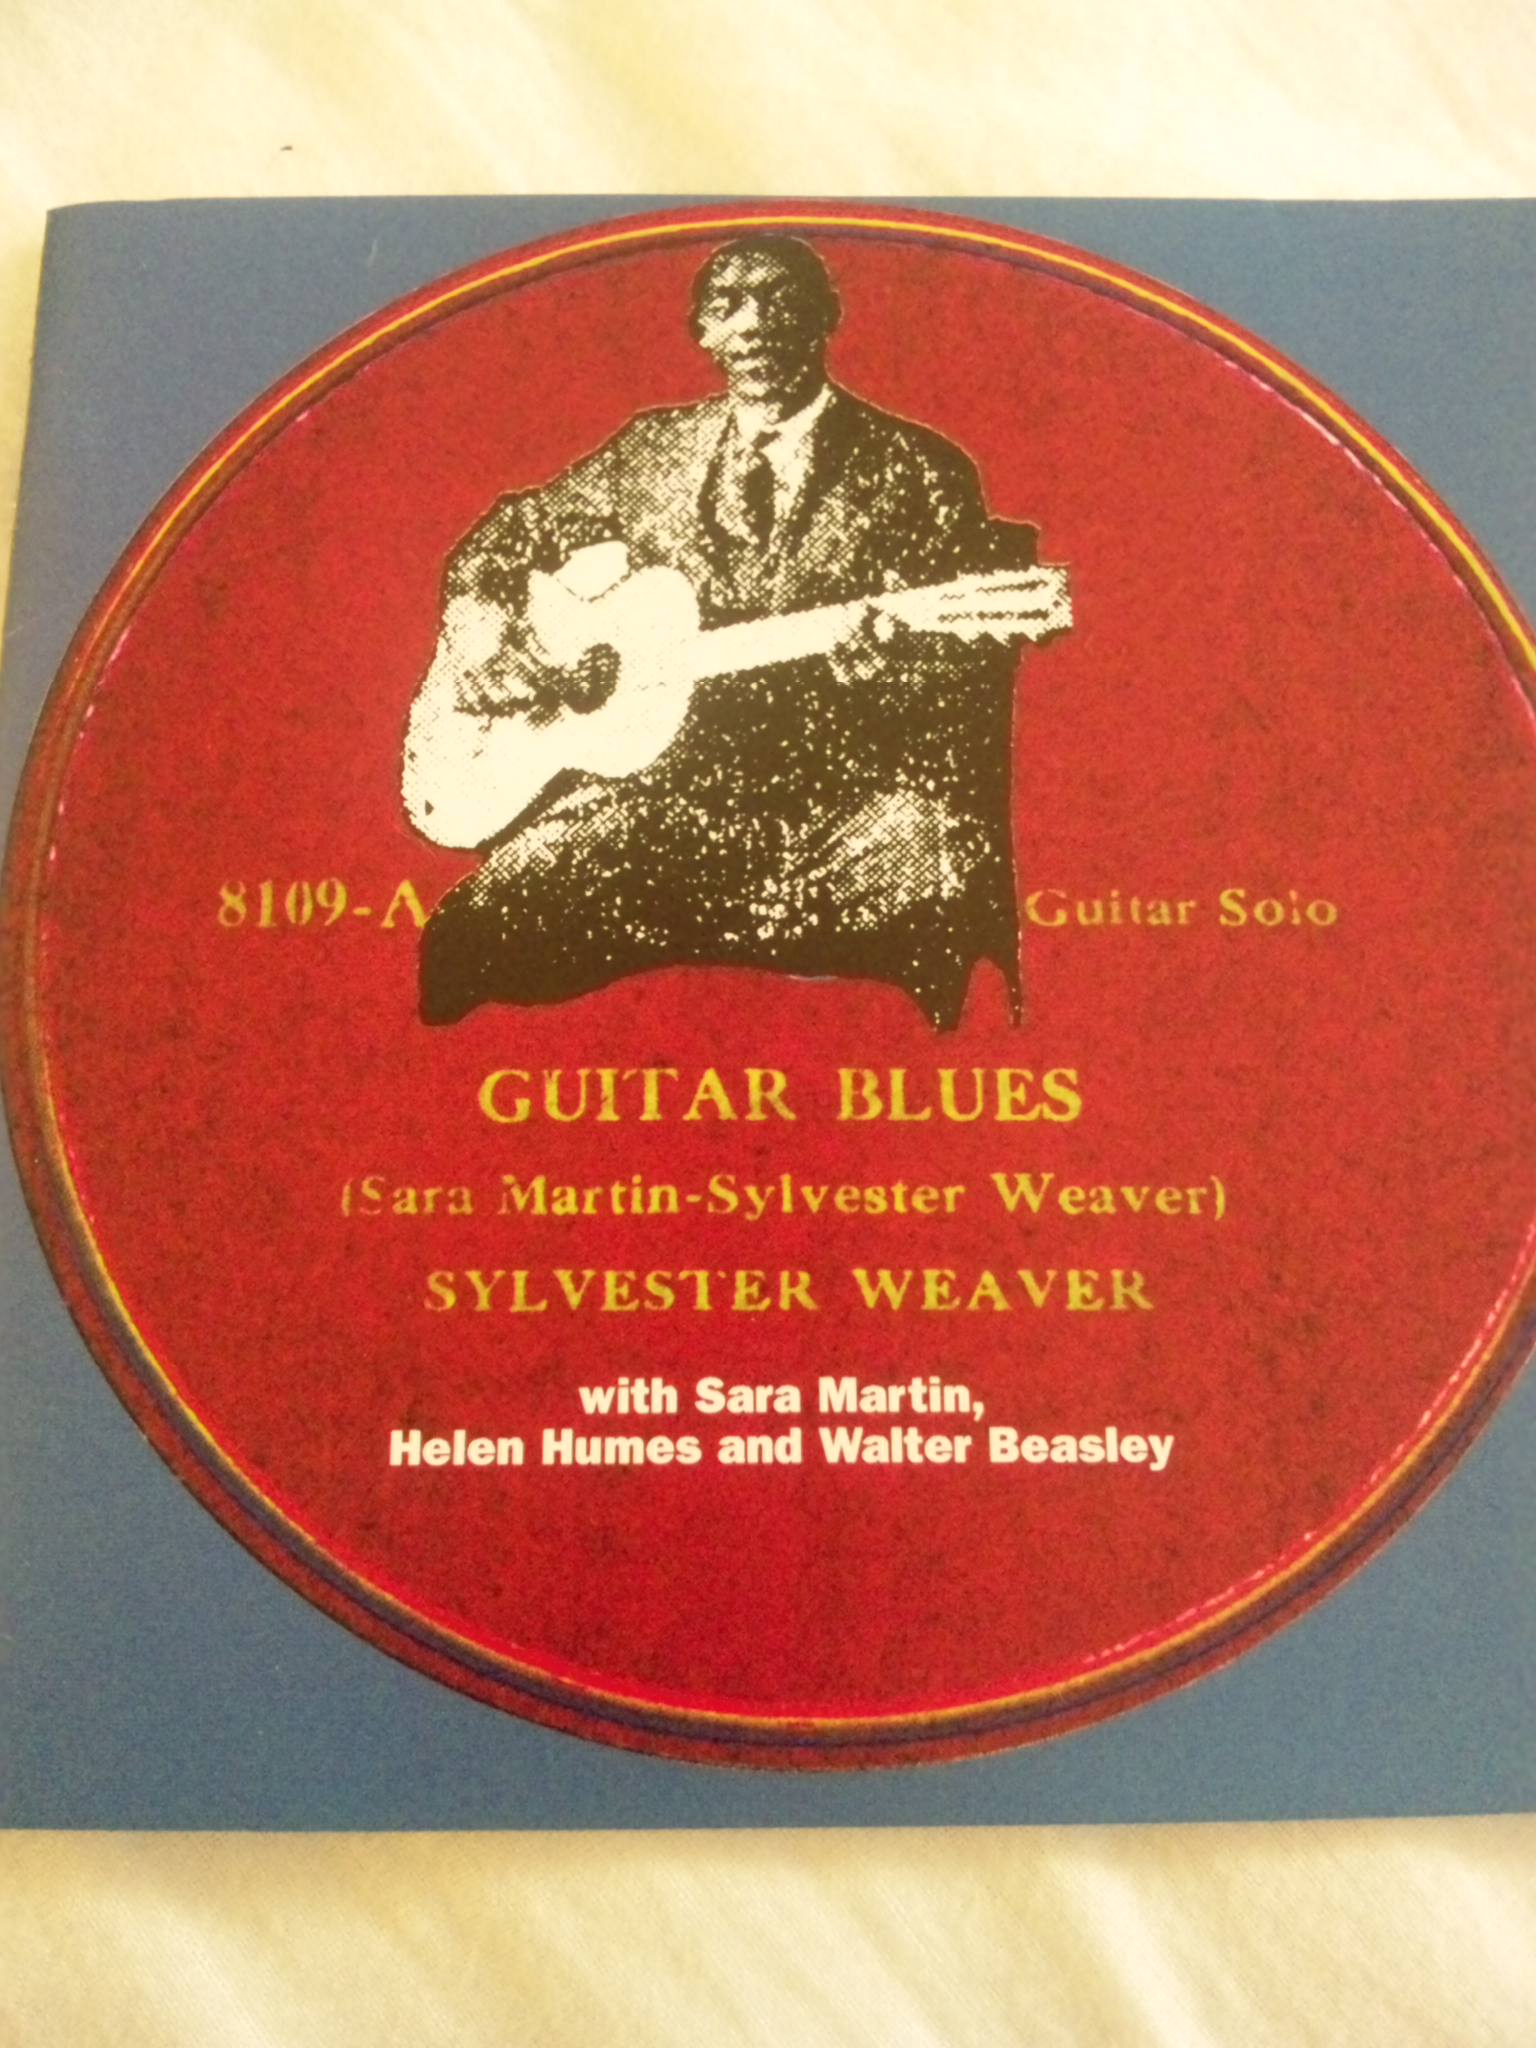 SYLVESTER WEAVER;GUITAR BLUES